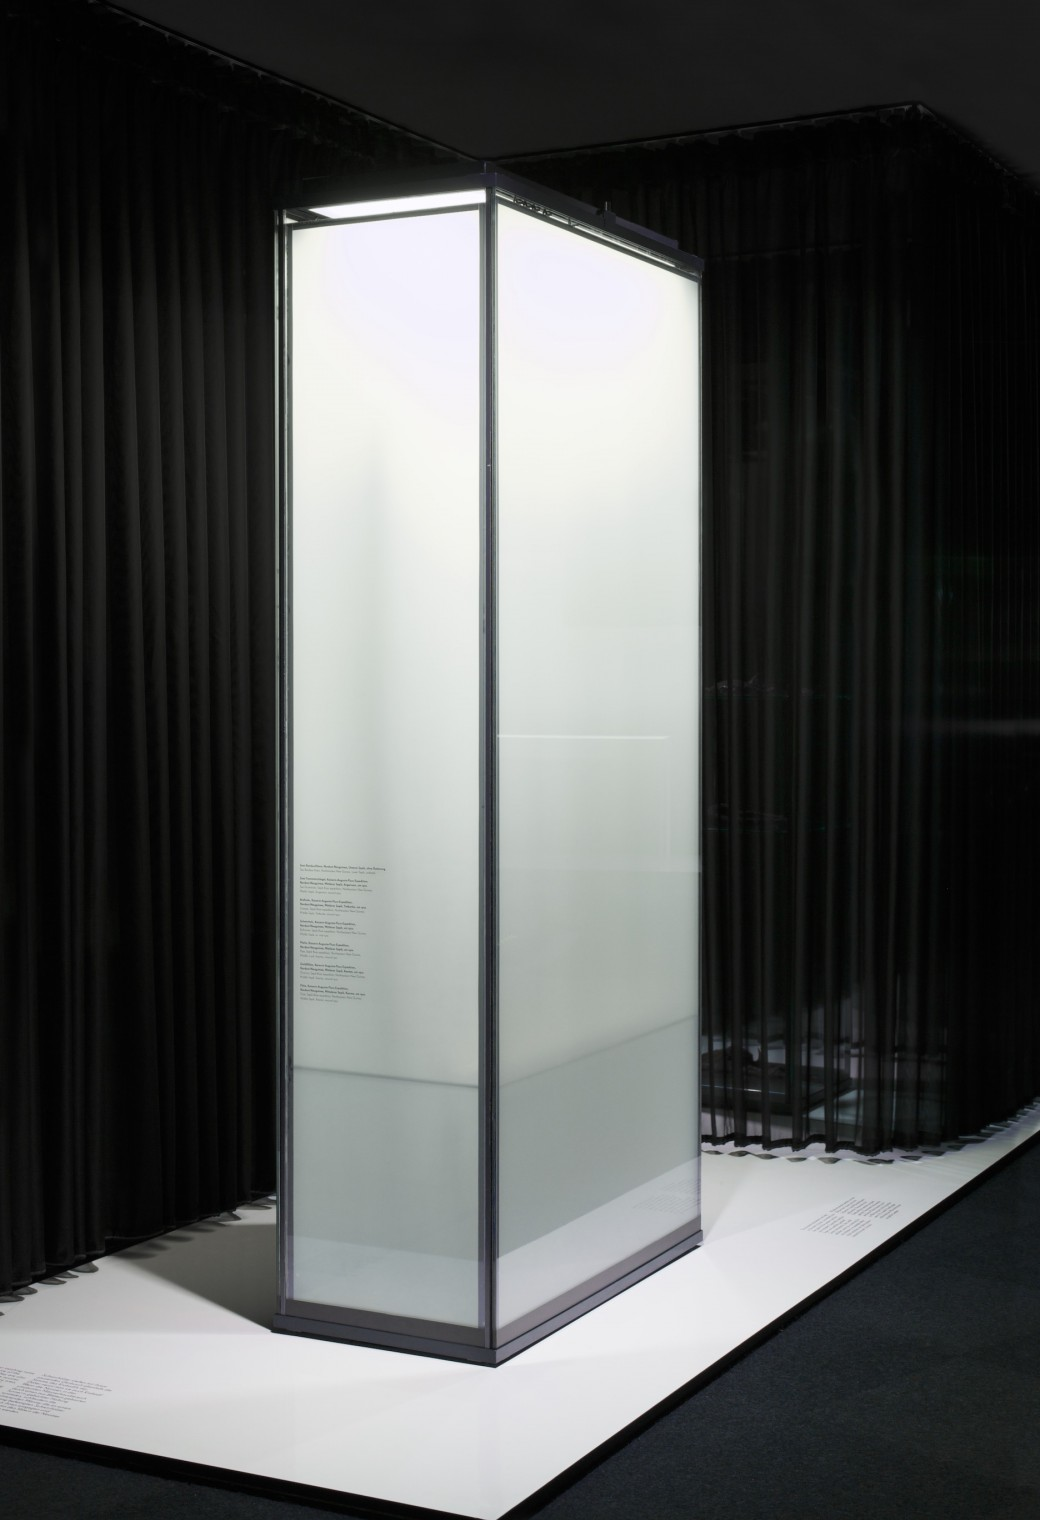 "<span lang=""de"">Trübende Vitrine</span><span lang=""en"">Tarnishing Glass Cabinet</span>"